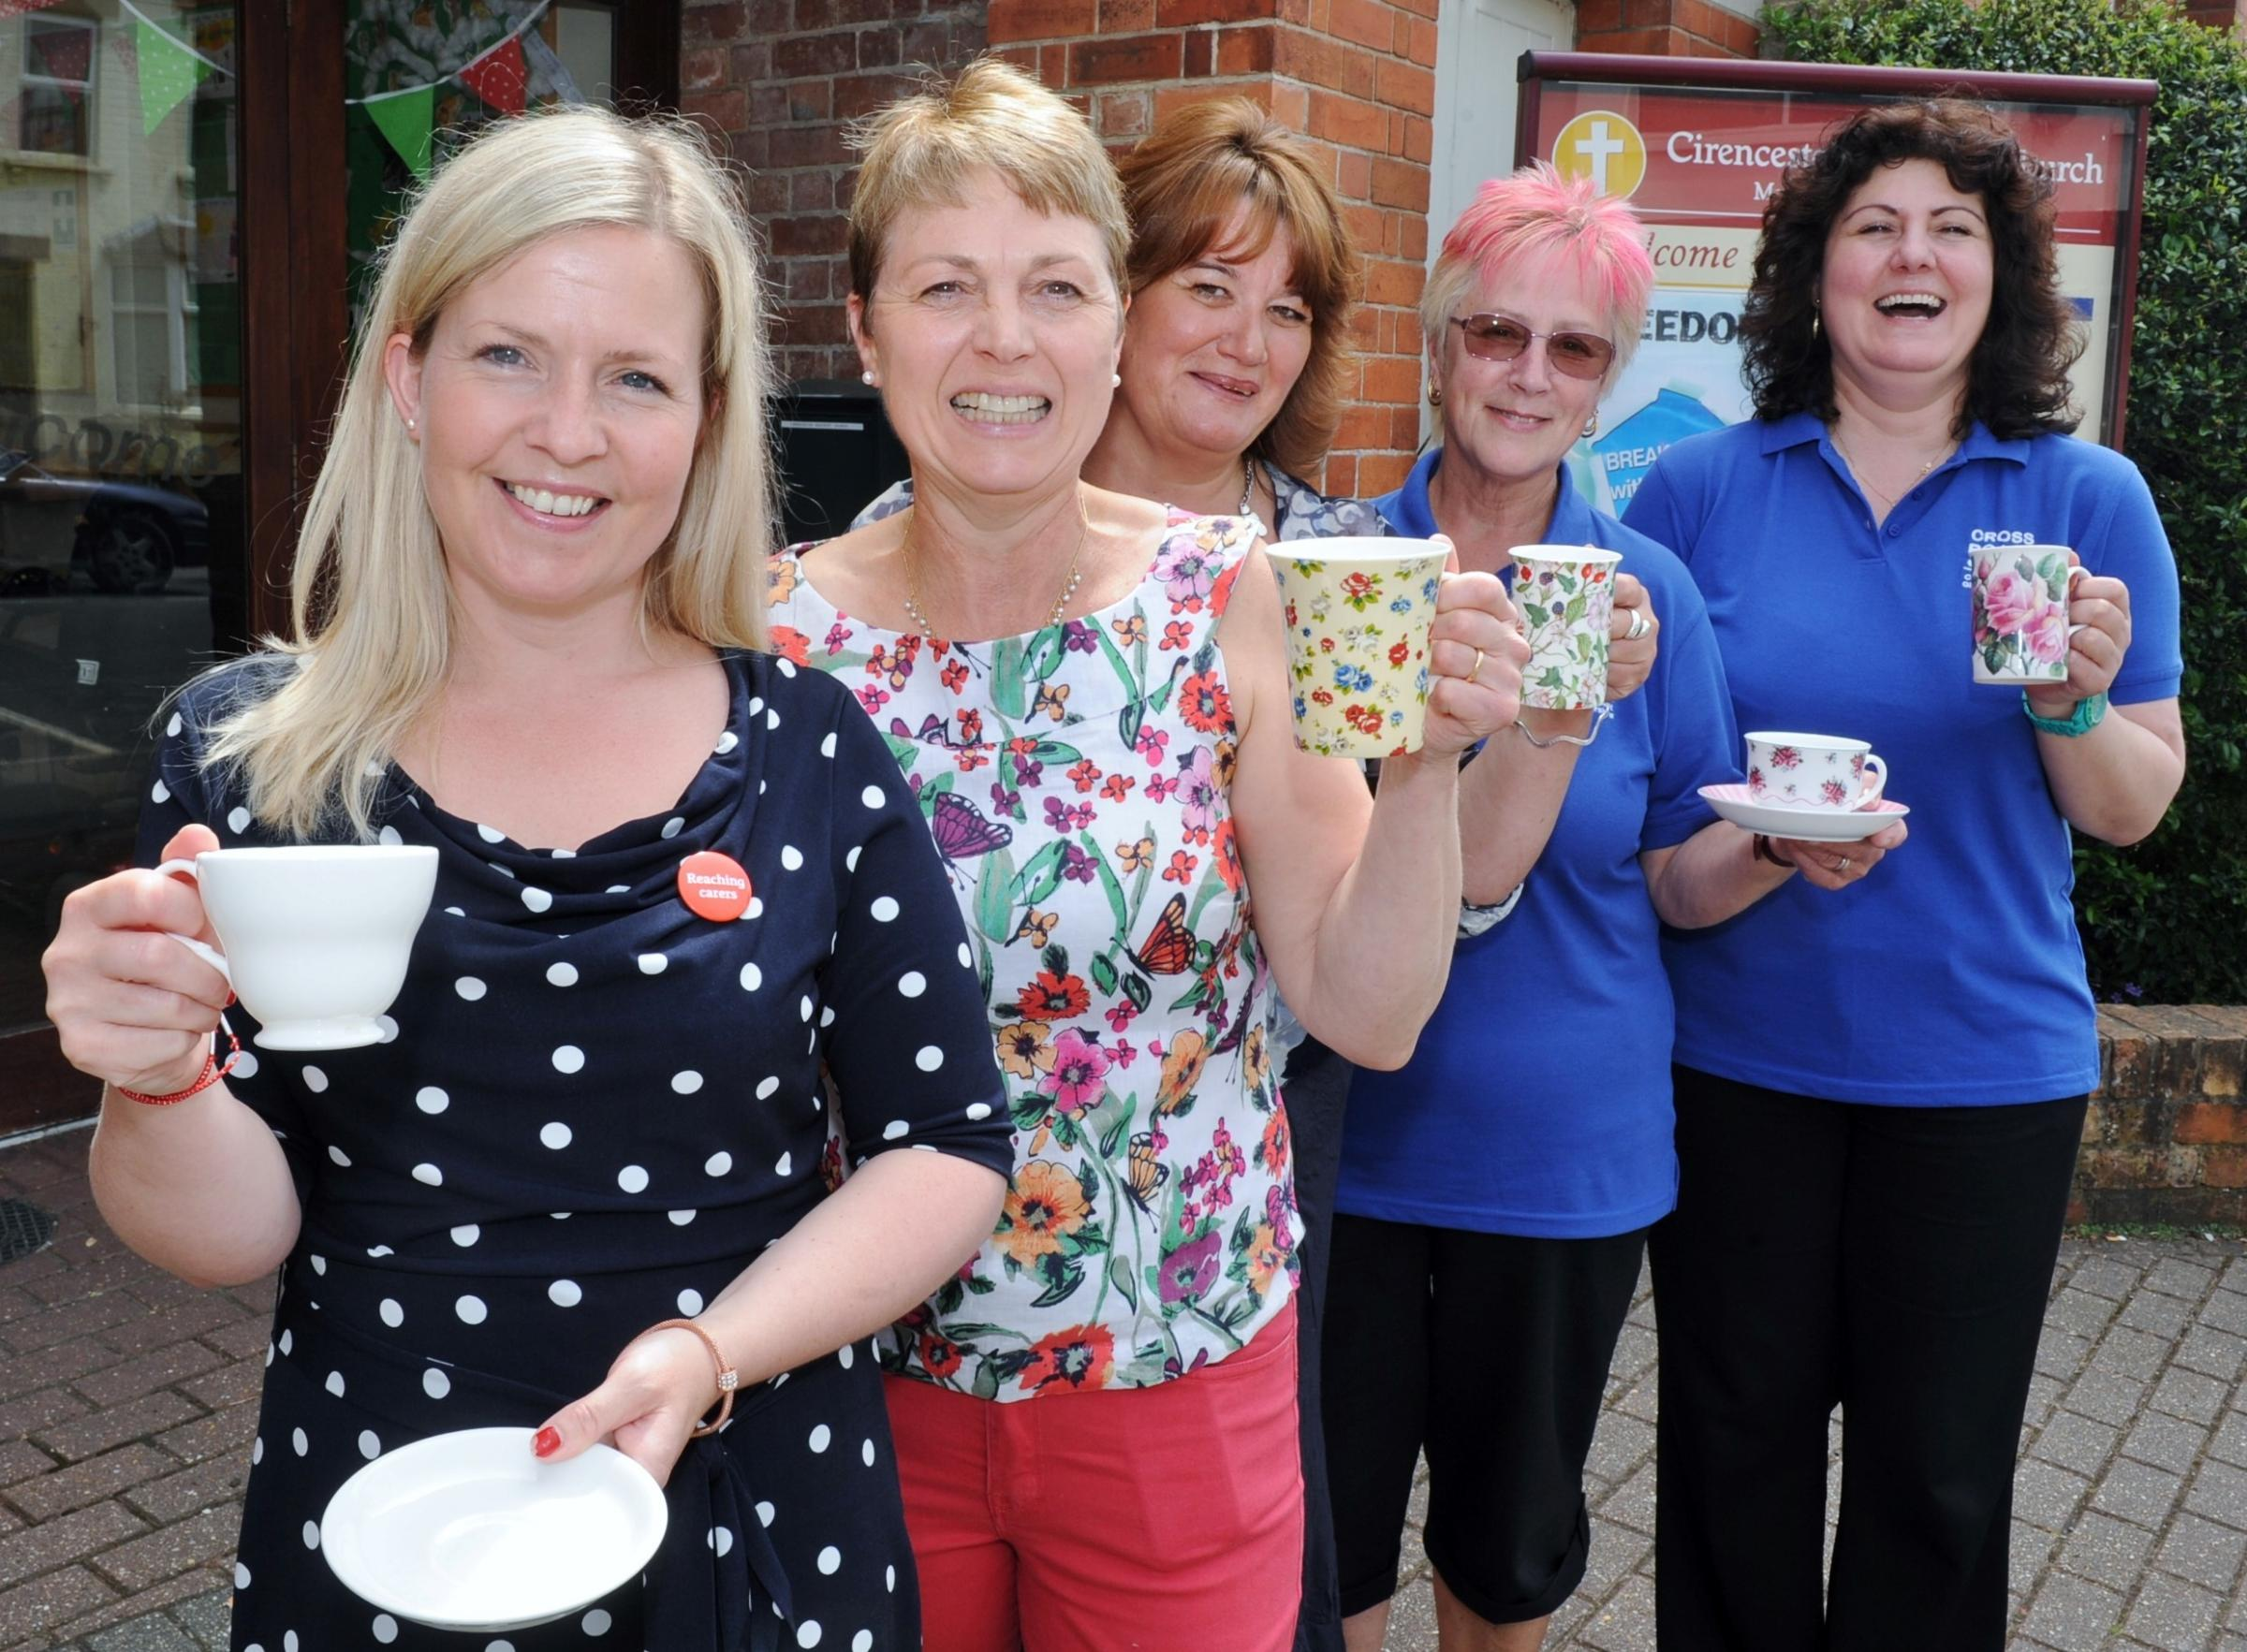 Carers praised at Cirencester tea party